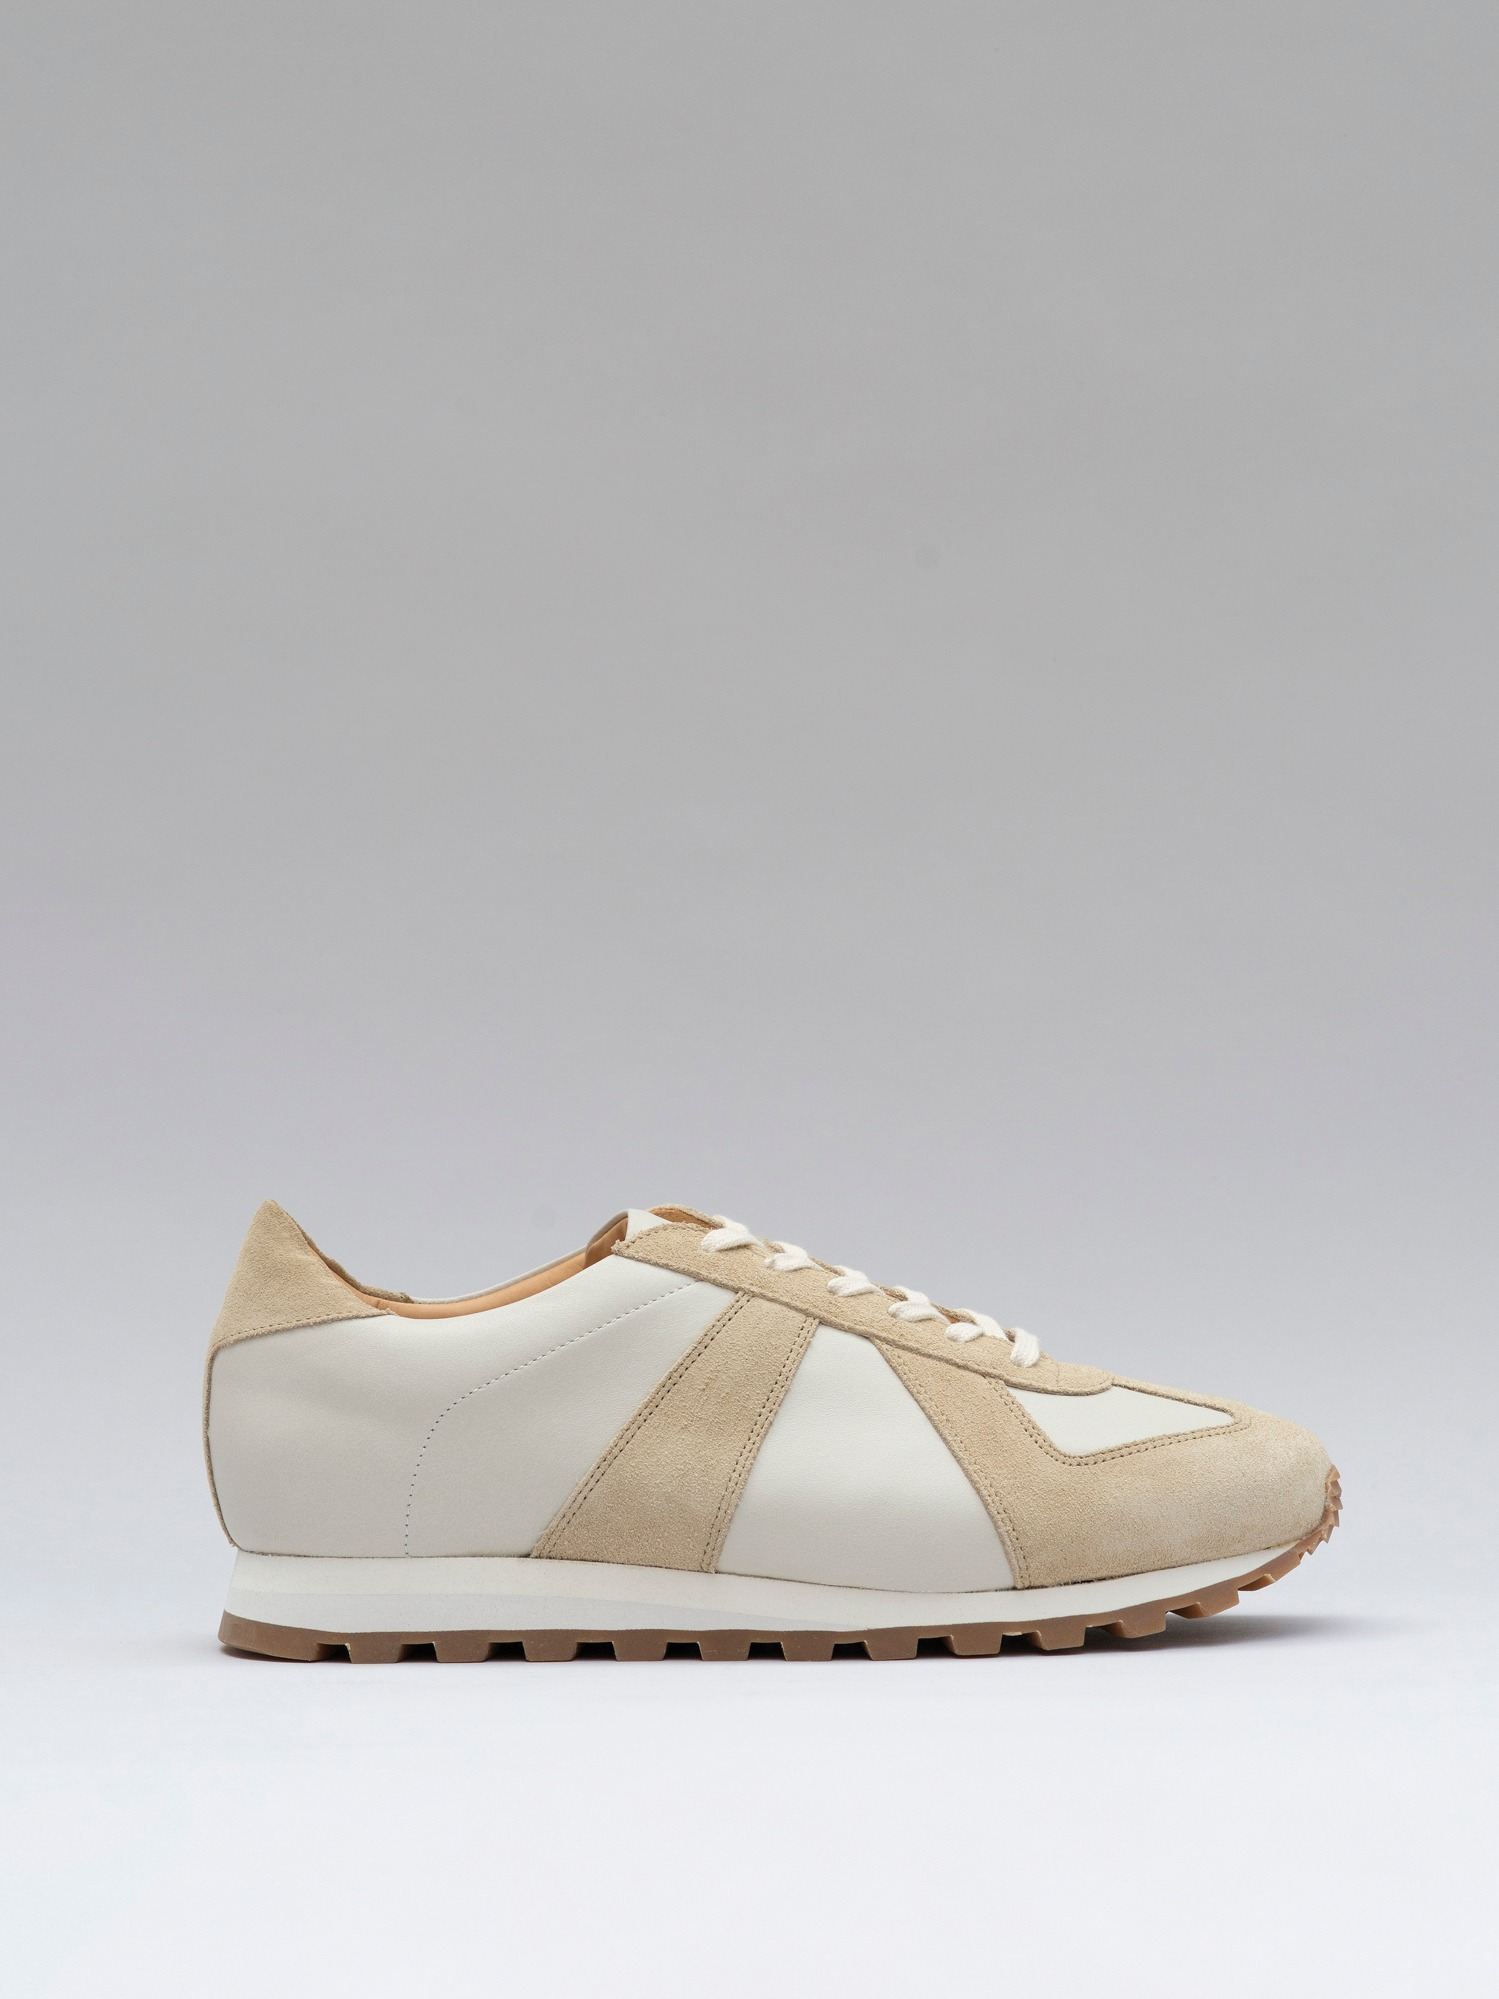 balmoral 07 suede/leather beige